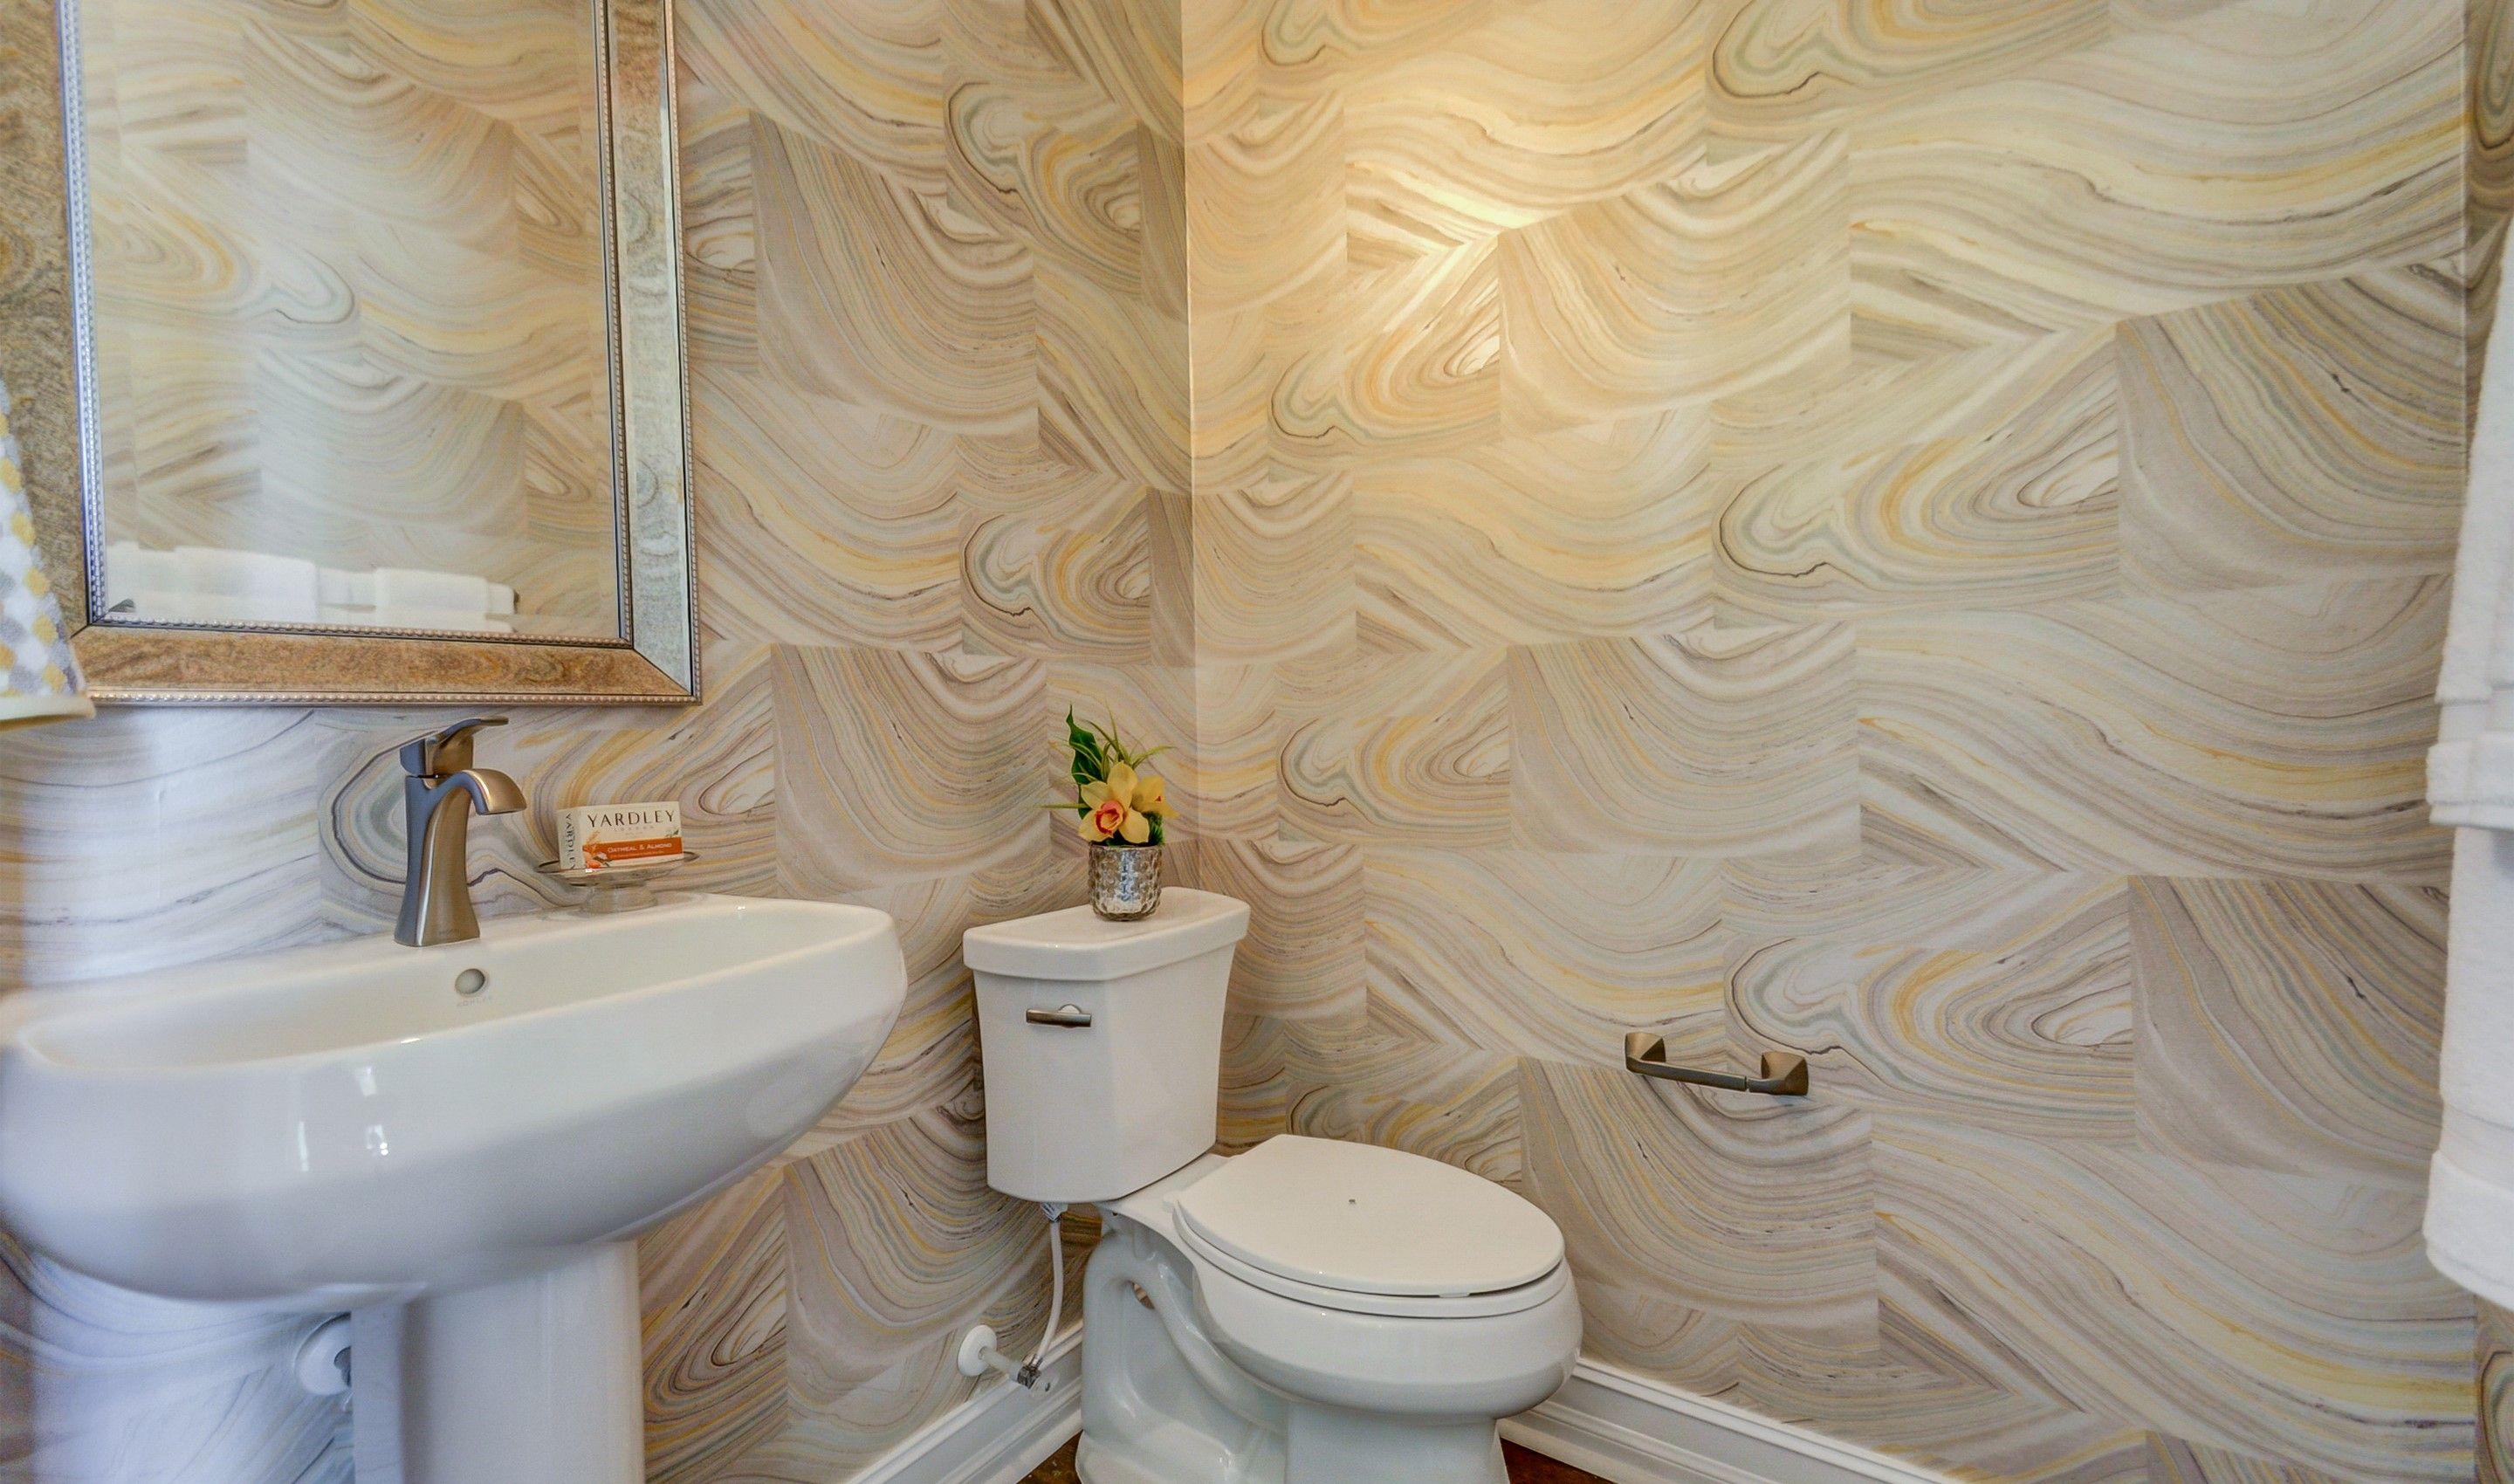 Bathroom featured in the Opal By K. Hovnanian's® Four Seasons in Broward County-Ft. Lauderdale, FL